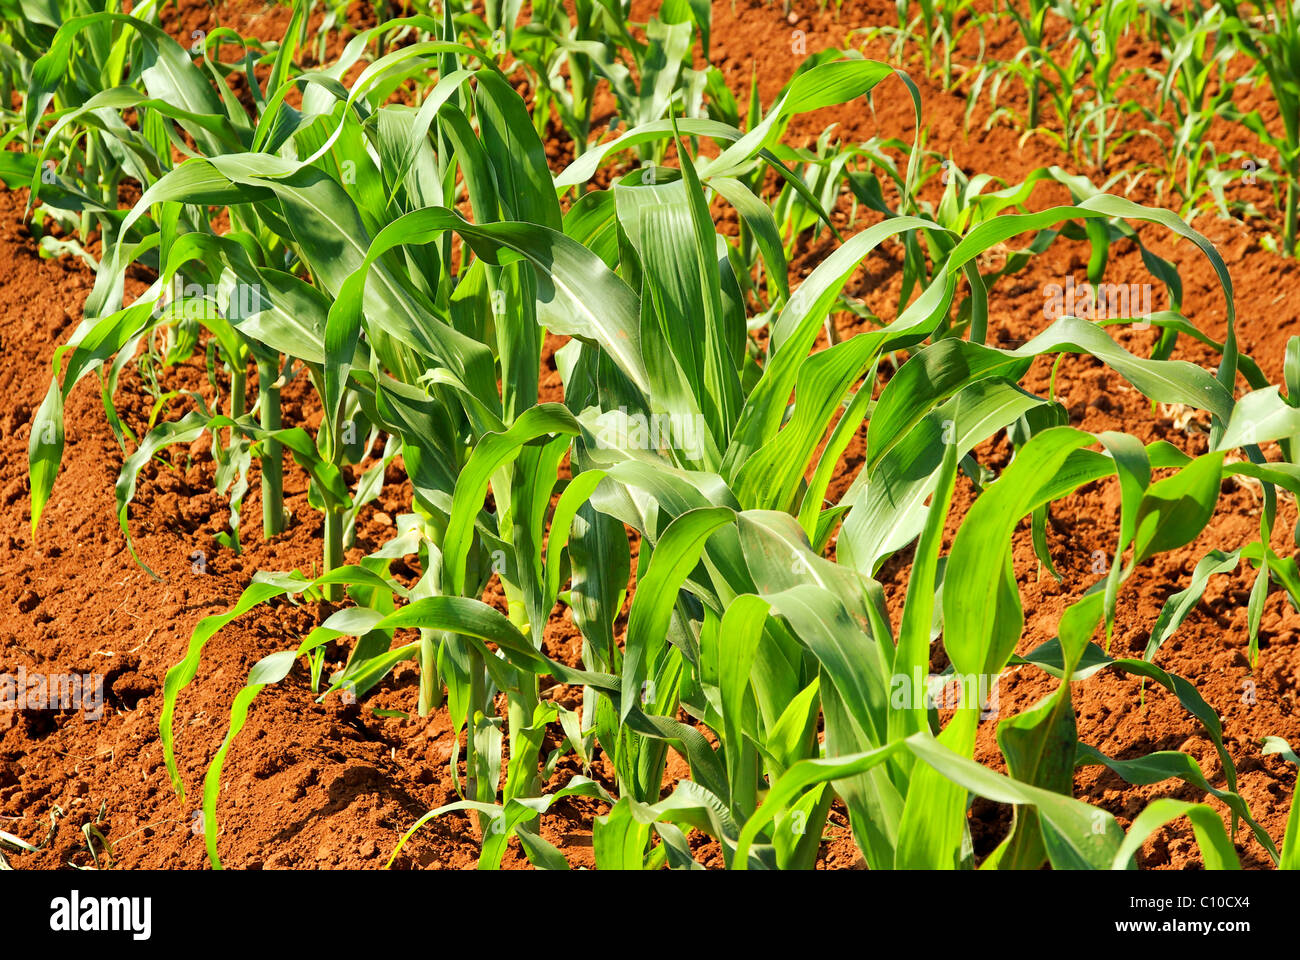 Maisfeld - corn field 01 - Stock Image